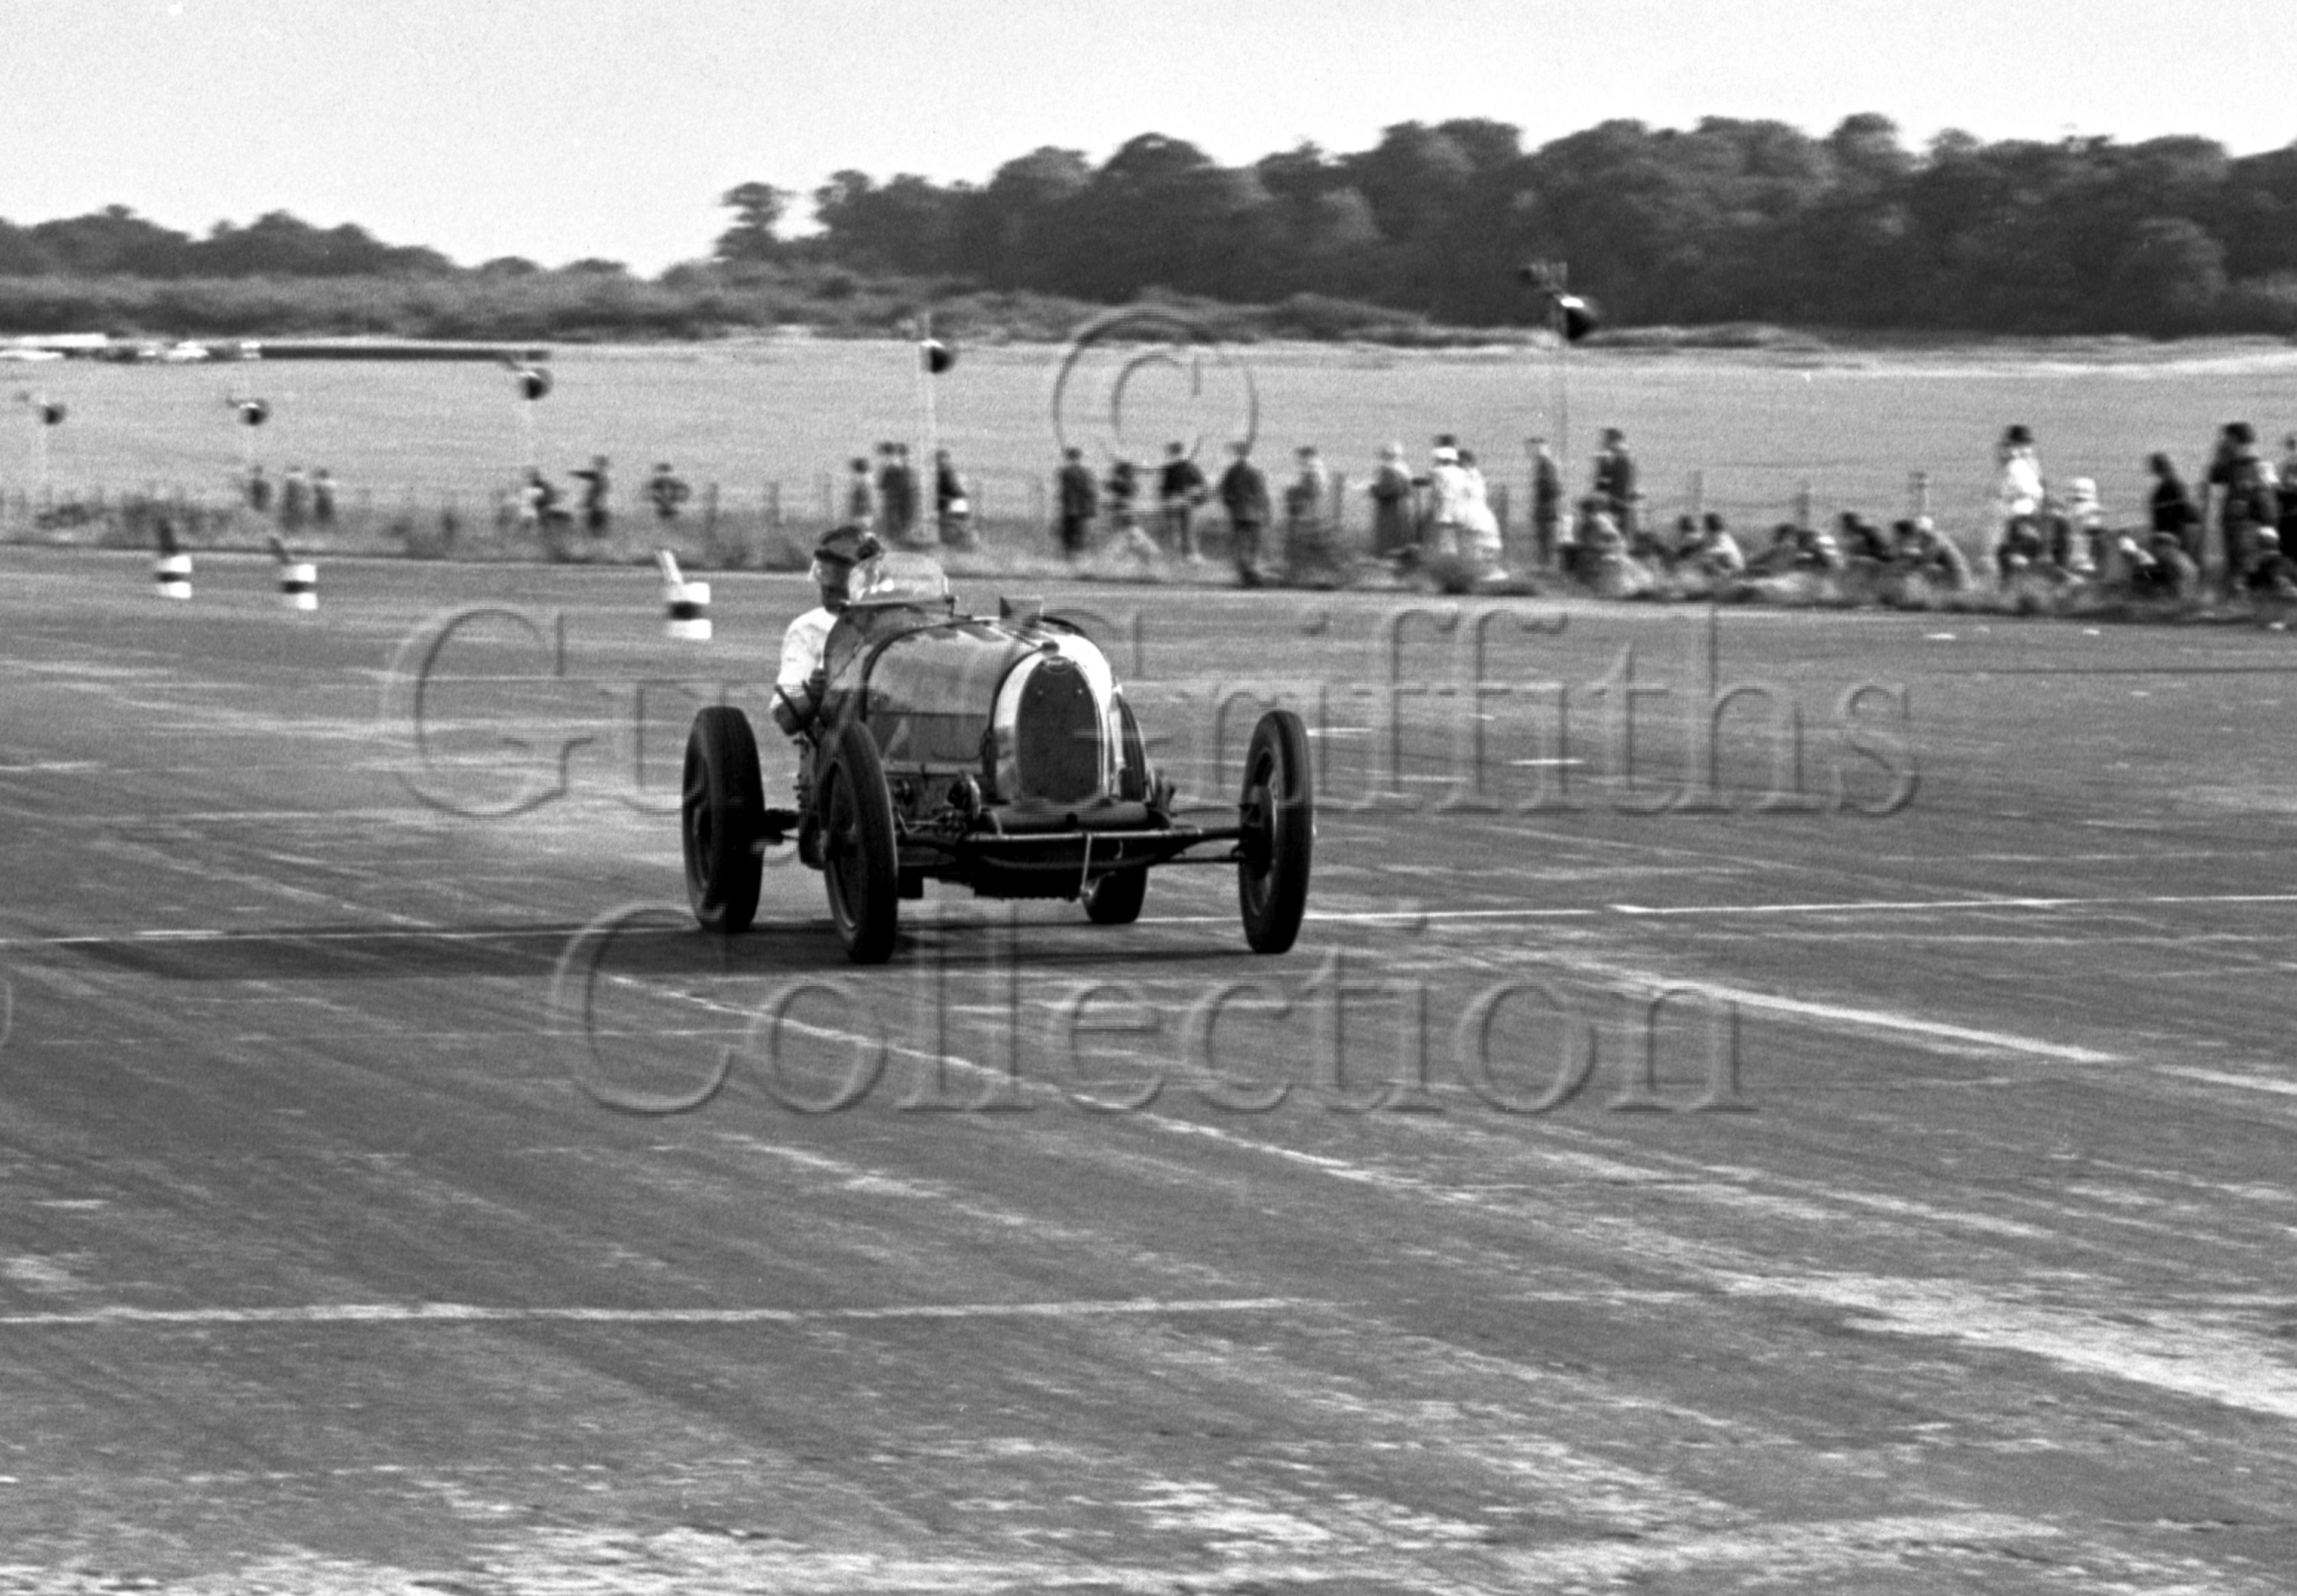 47-892–J-Ching–Bugatti–Silverstone–28-07-1951.jpg - The Guy Griffiths Collection